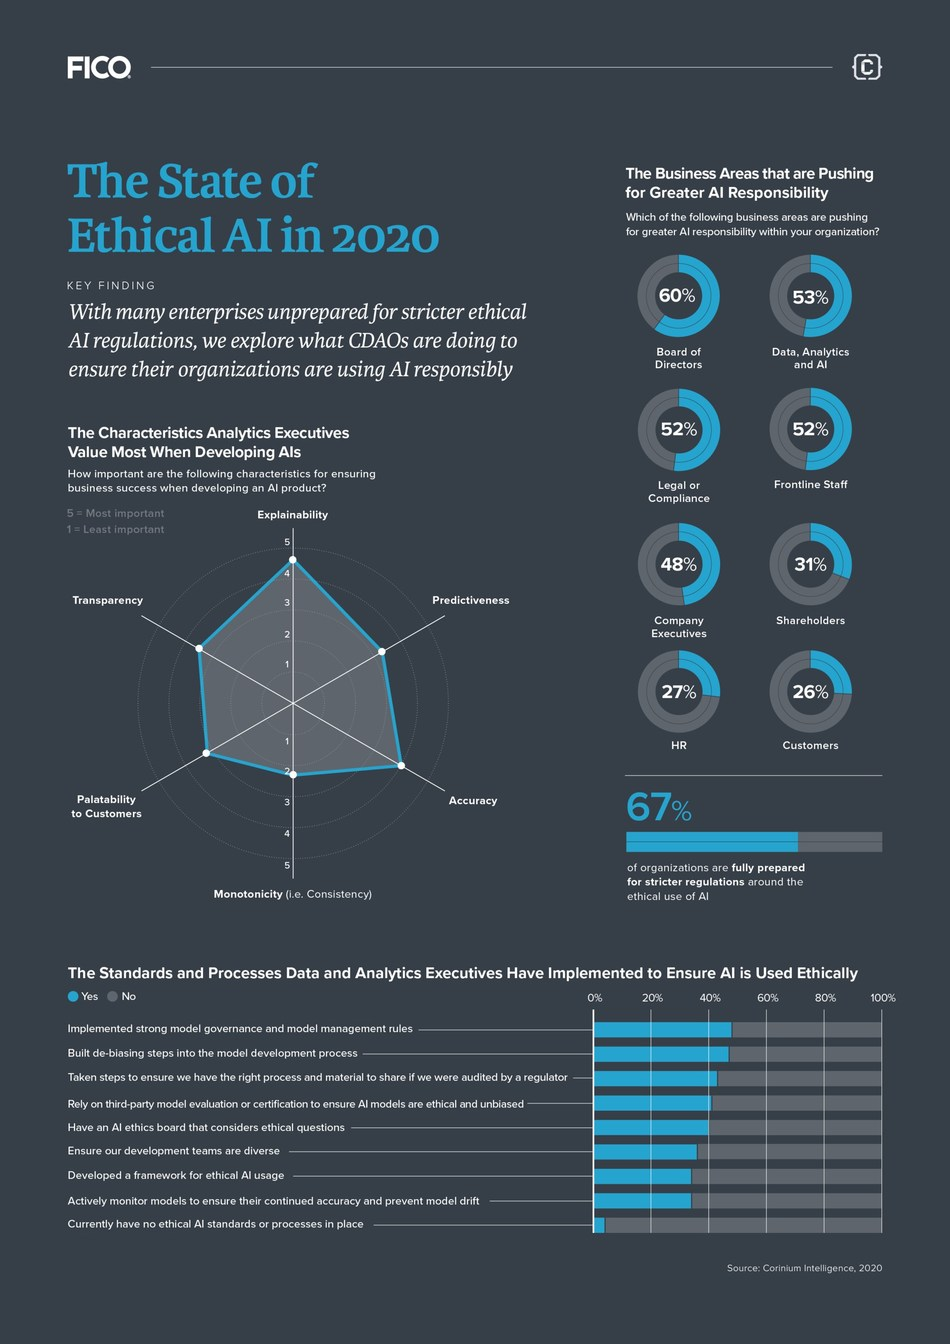 Many enterprises are unprepared for stricter ethical AI regulations.